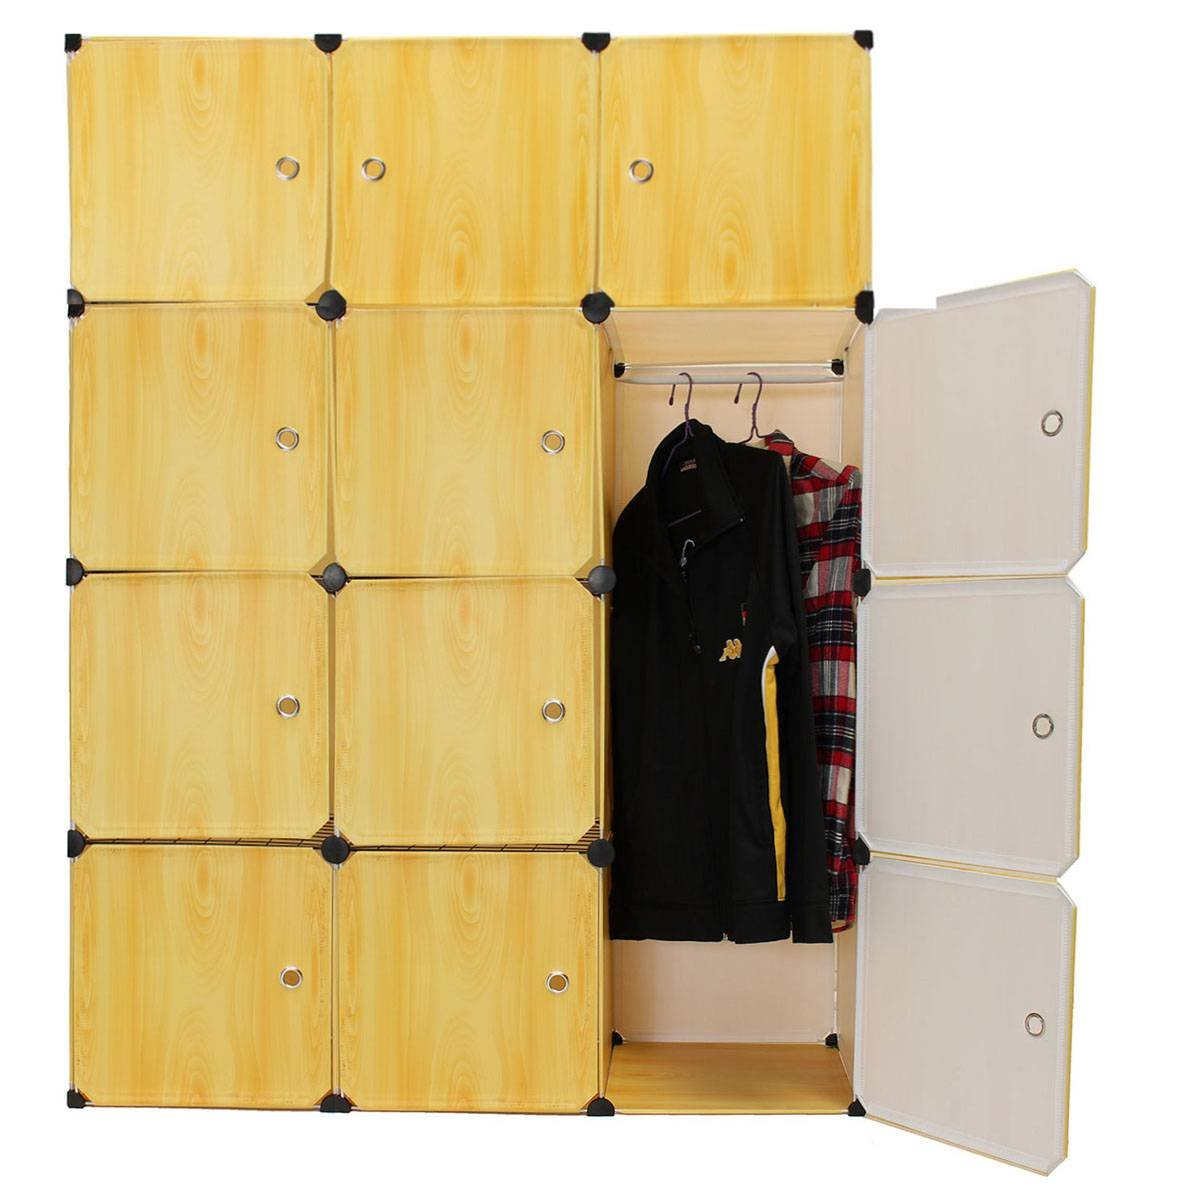 wood resin box grain kitchen wardrobe clothes closet diy storage kingso amazon dp home cubes cabinet organizer yellow com